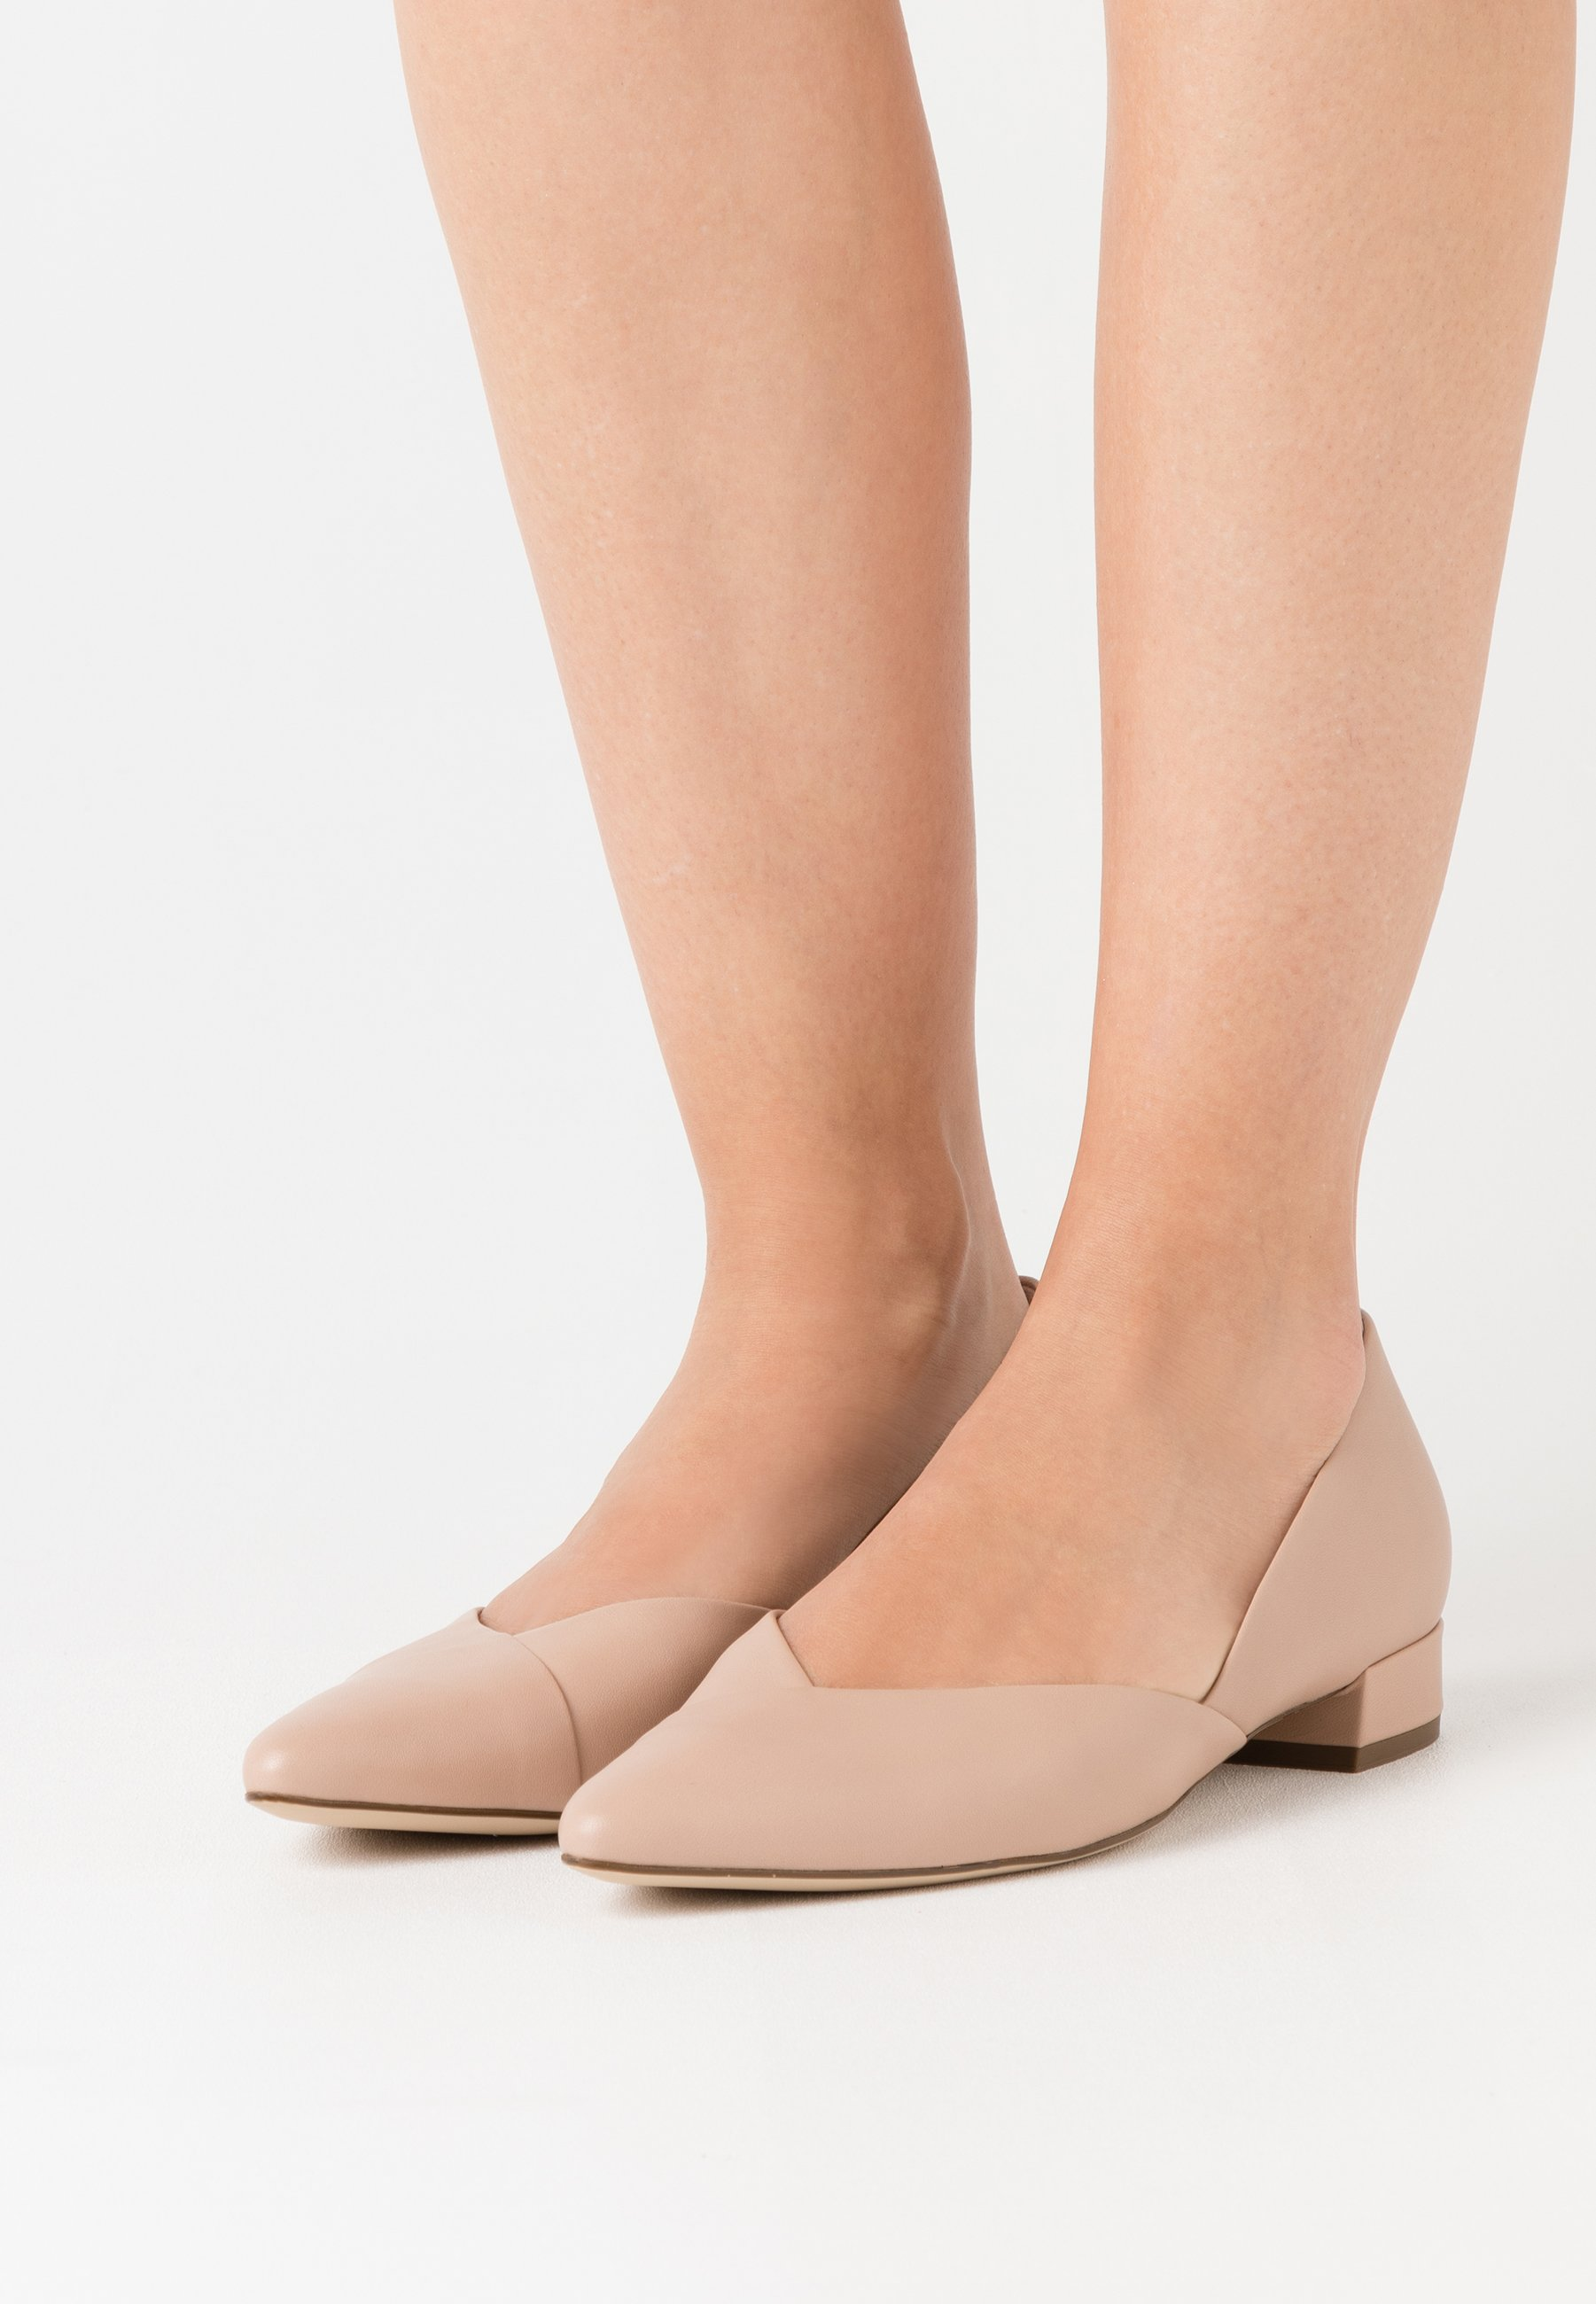 Particular Discount Cheapest Högl SLIMLY - Ballet pumps - nude | women's shoes 2020 nfxRE